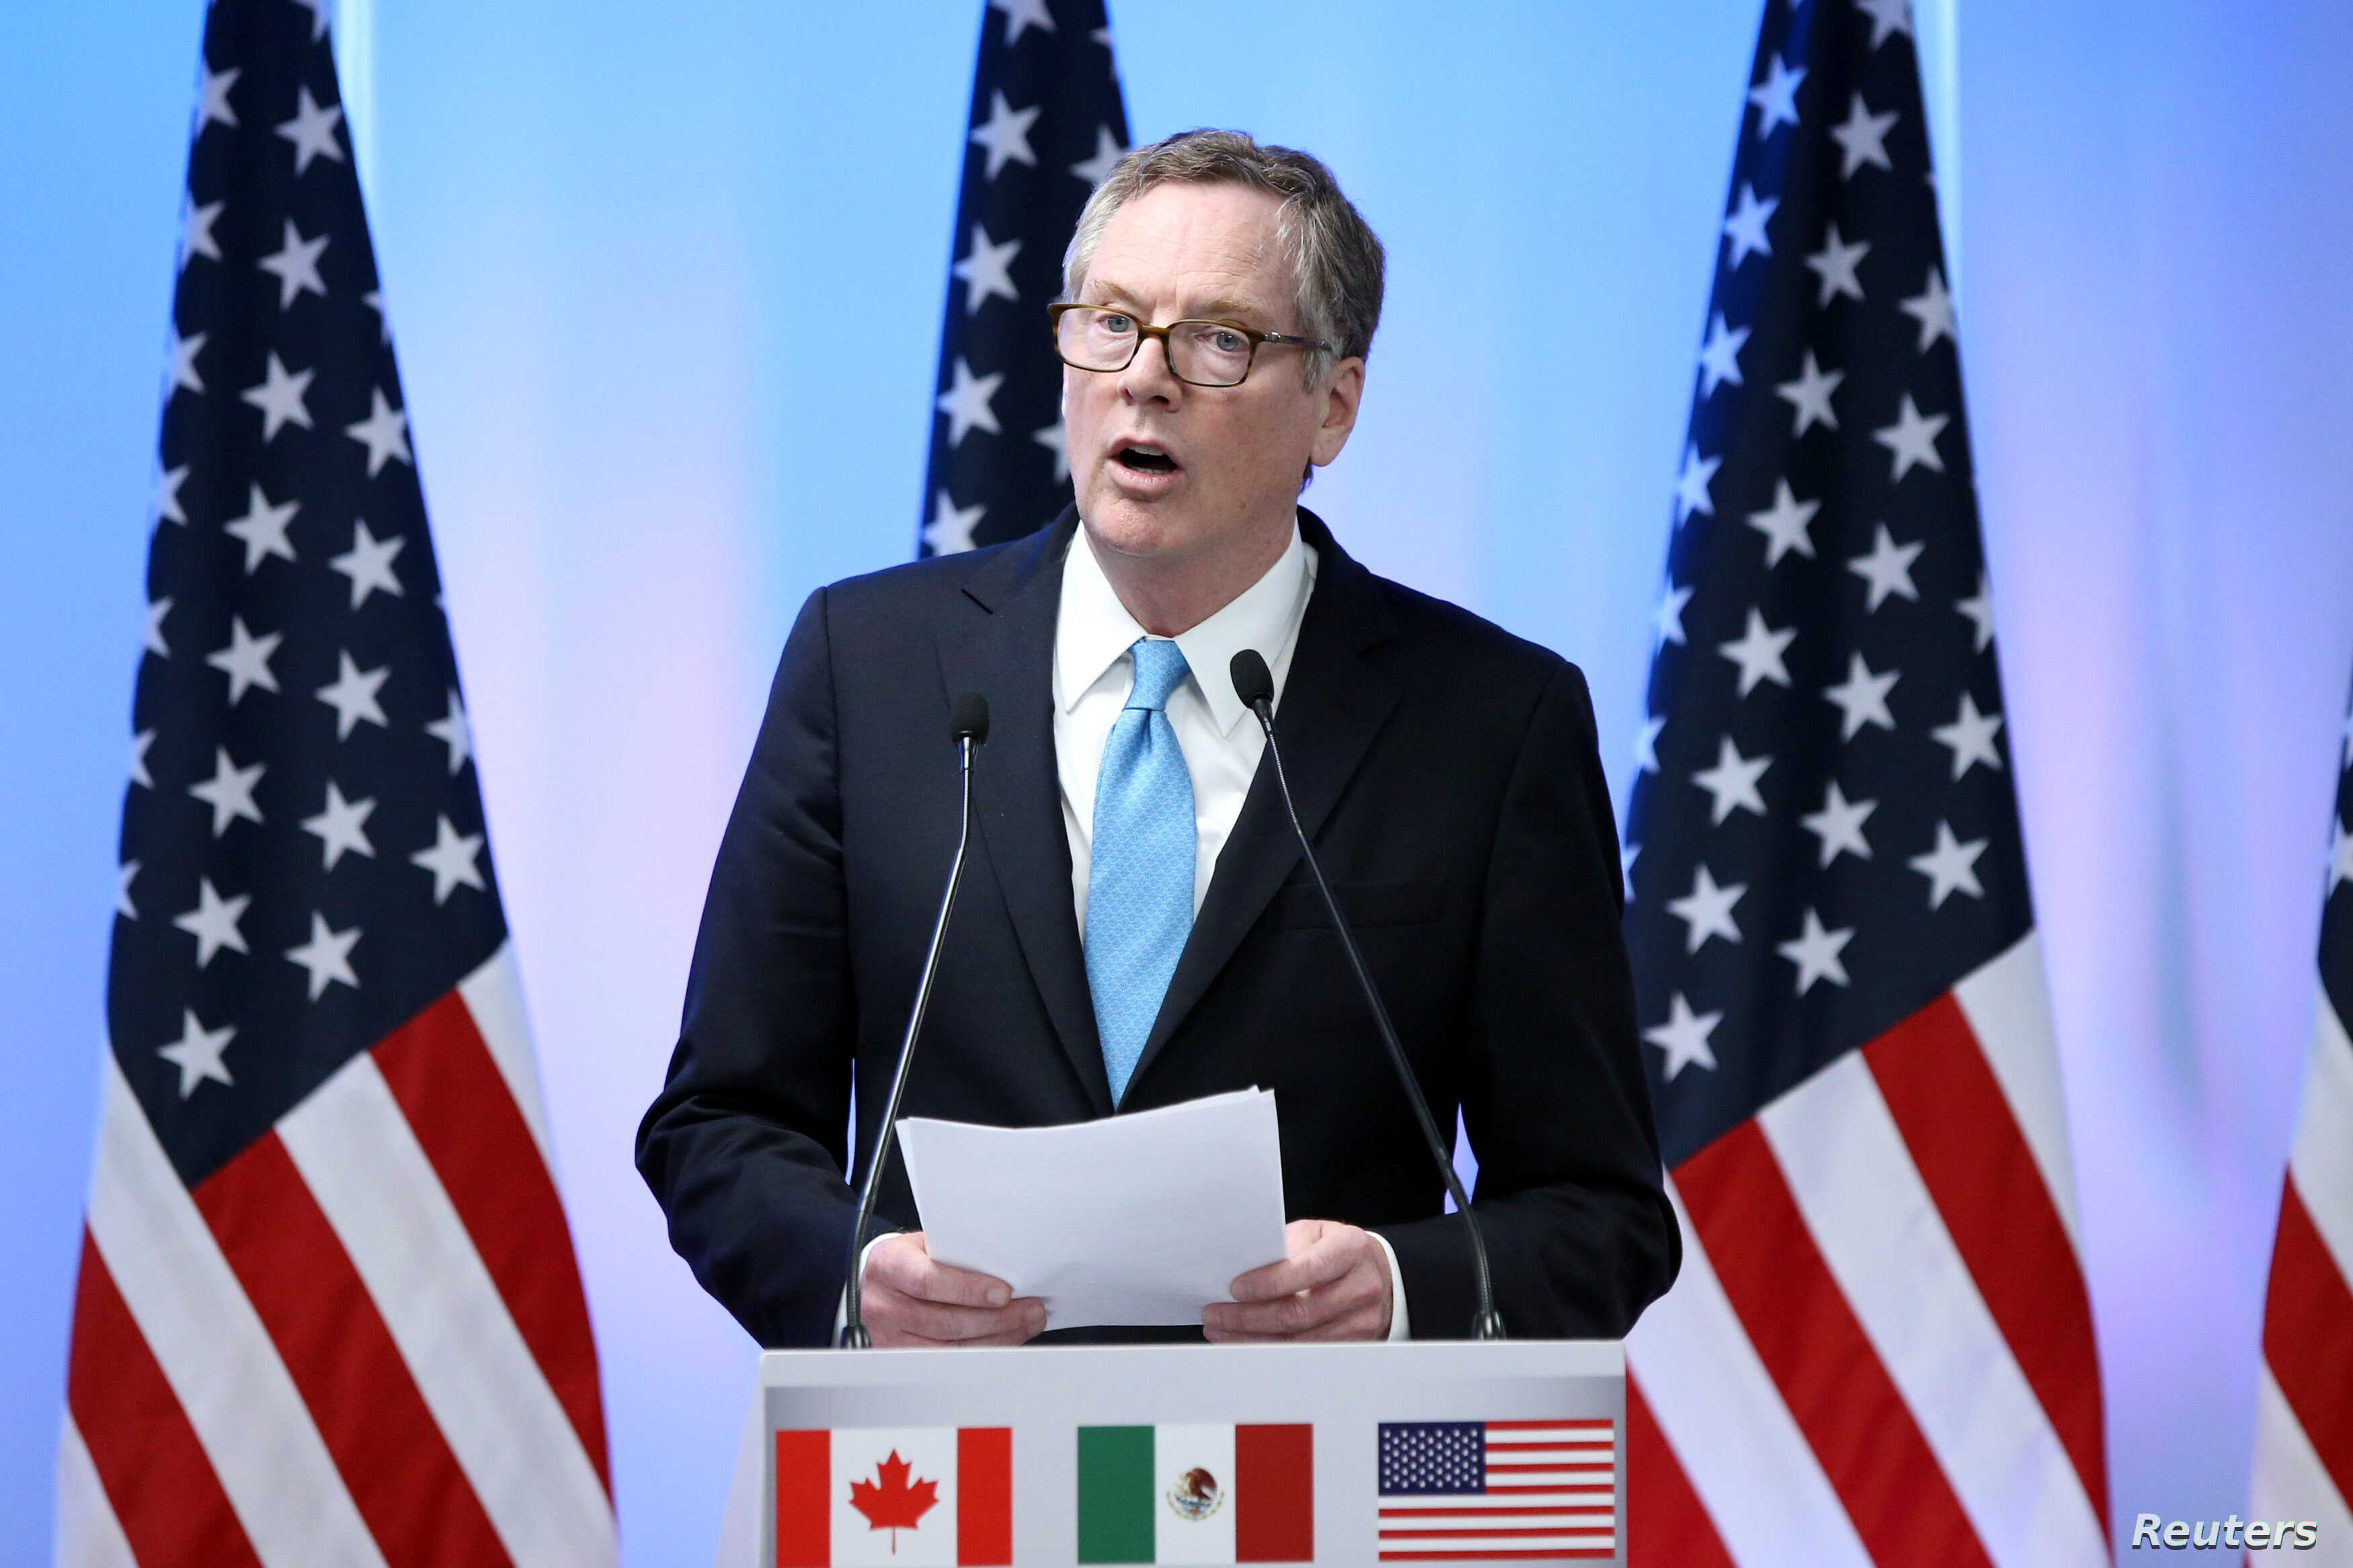 U.S. Trade Representative Robert Lighthizer addresses the media to close the second round of NAFTA talks involving the United States, Mexico and Canada in Mexico City, Mexico, Sept. 5, 2017.